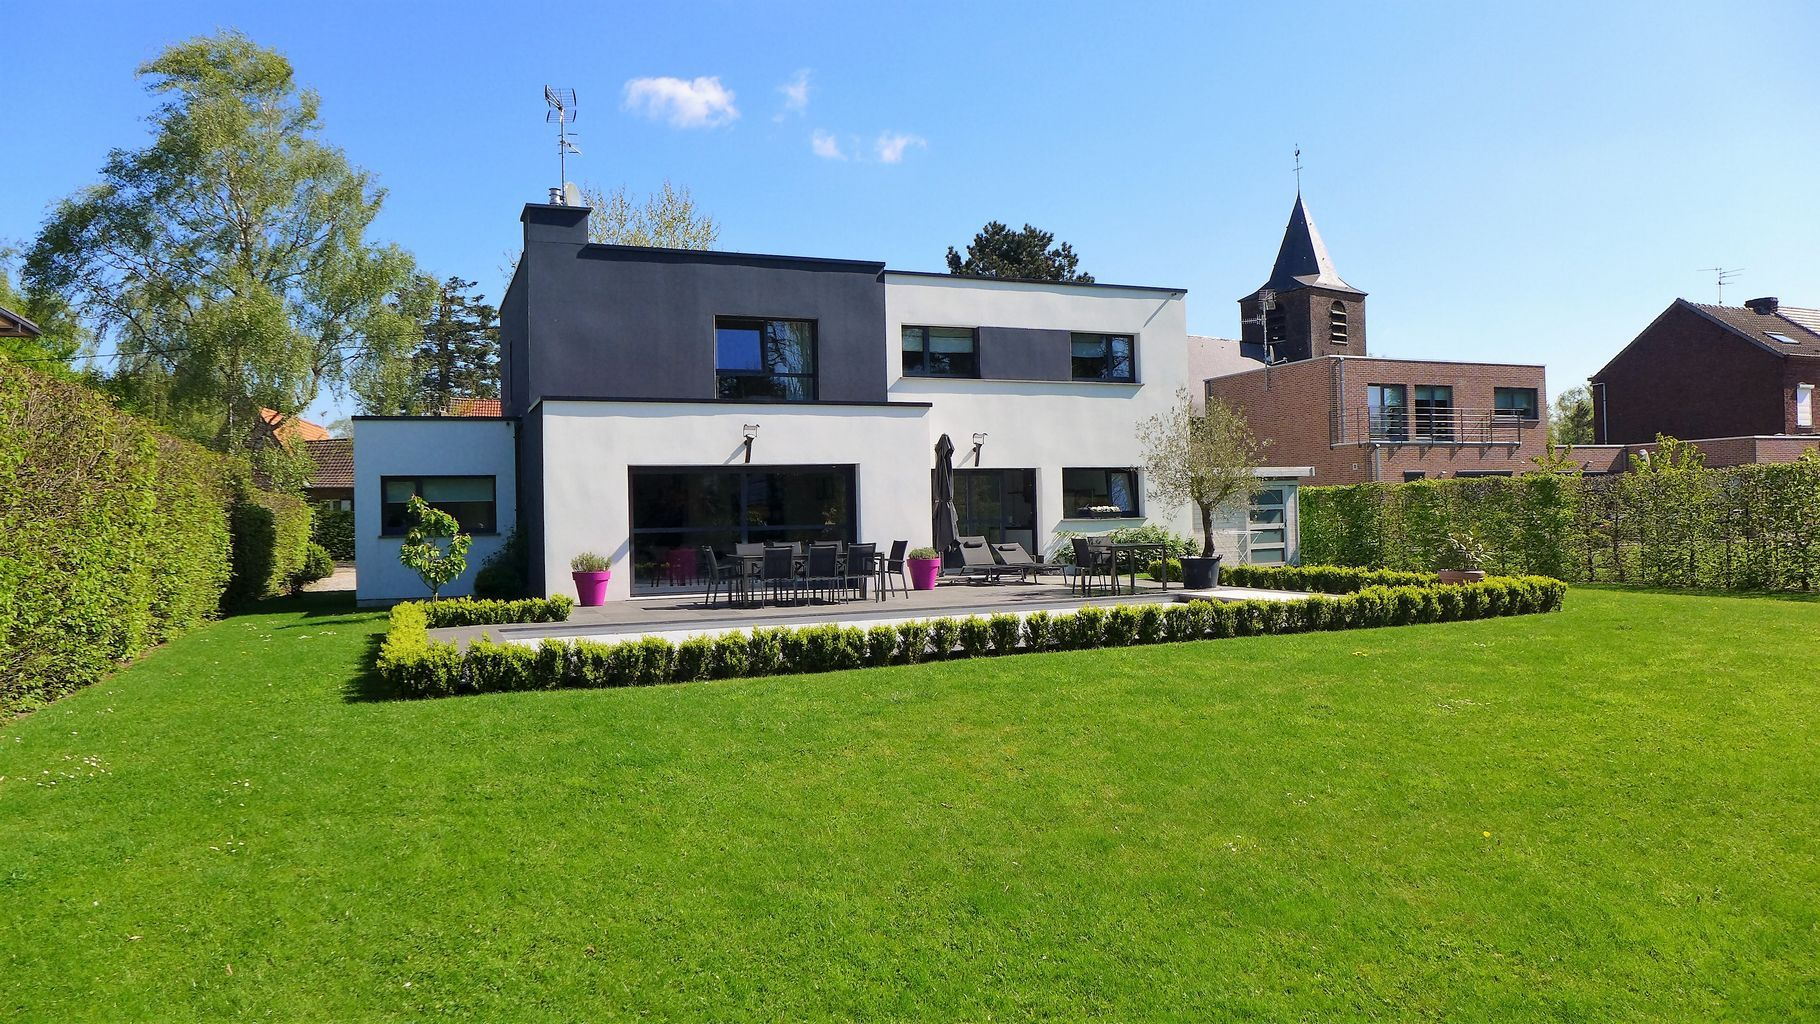 Aim agence immobili re lille vente achat location maison for Agence immobiliere en vente